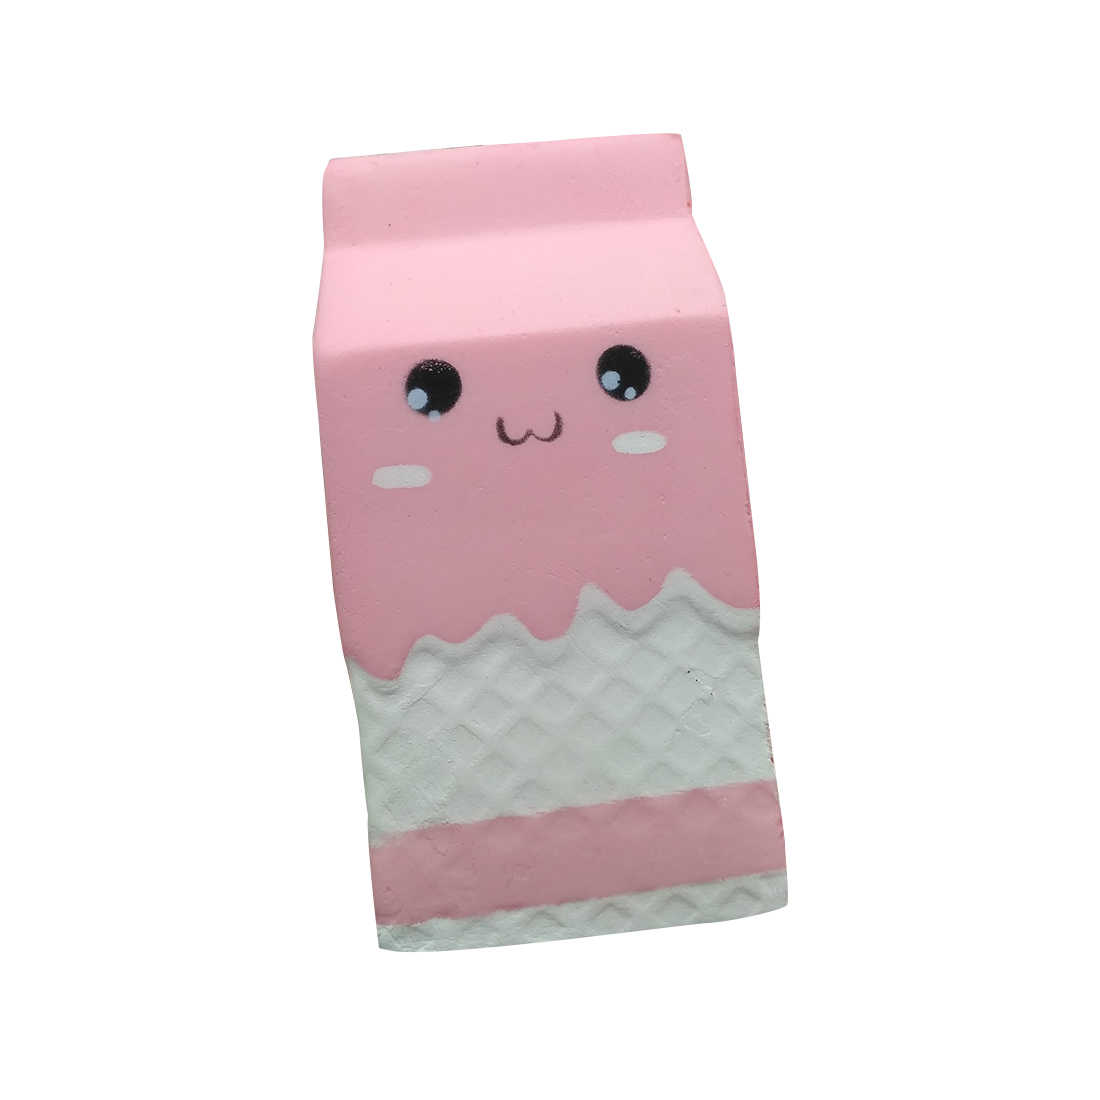 Cartoon Yogurt Box Squishy Jumbo Cartoon Expression Milk Box Slow Rising Phone Straps DIY Decor Squeeze Toys Cute Milk Bottle P2